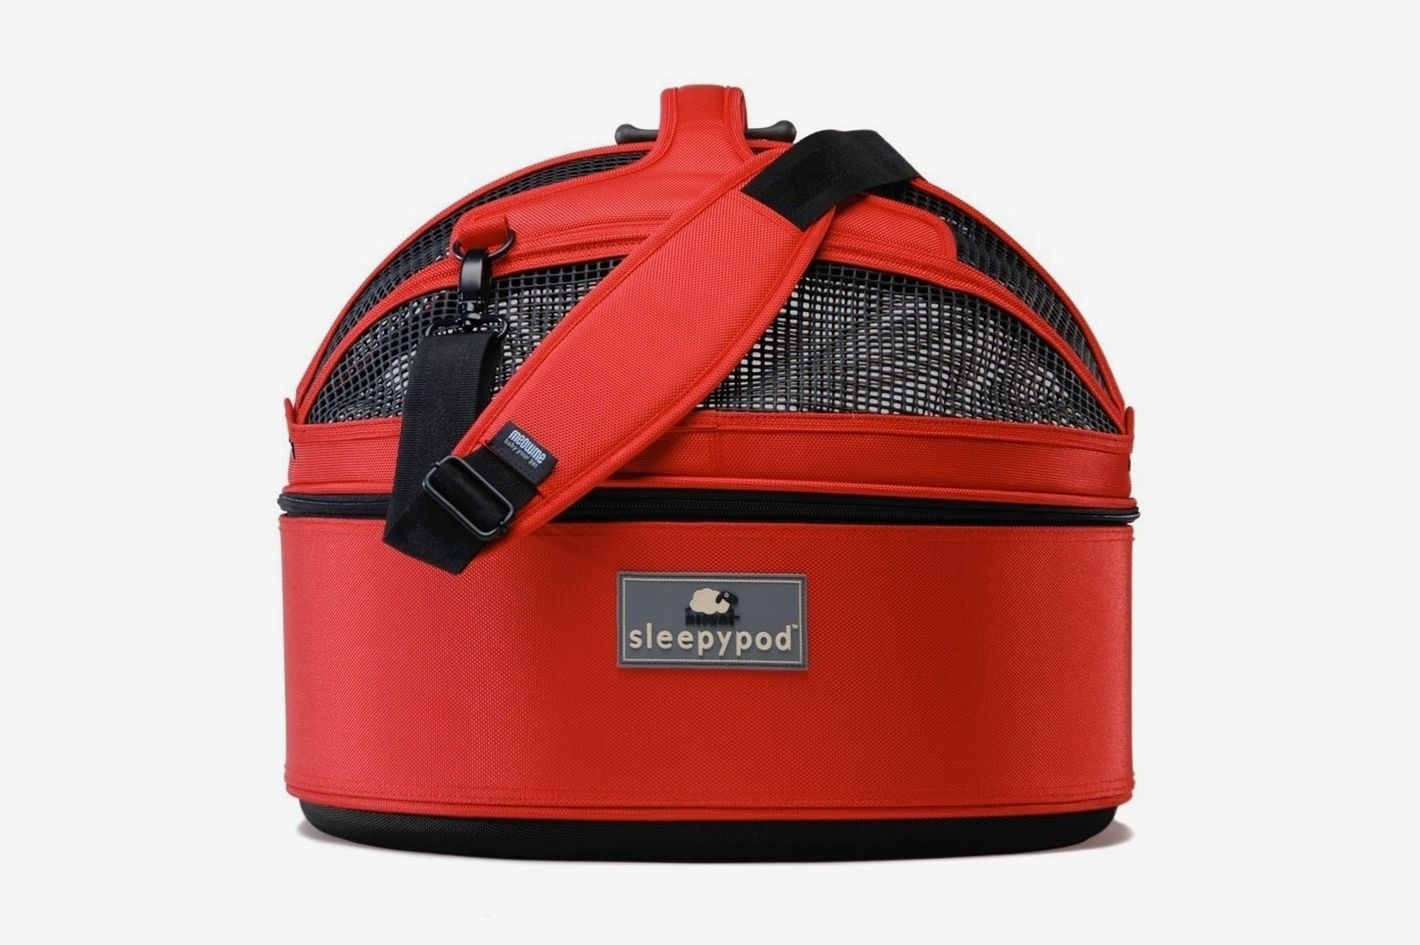 Sleepypod Mobile Pet Bed & Carrier